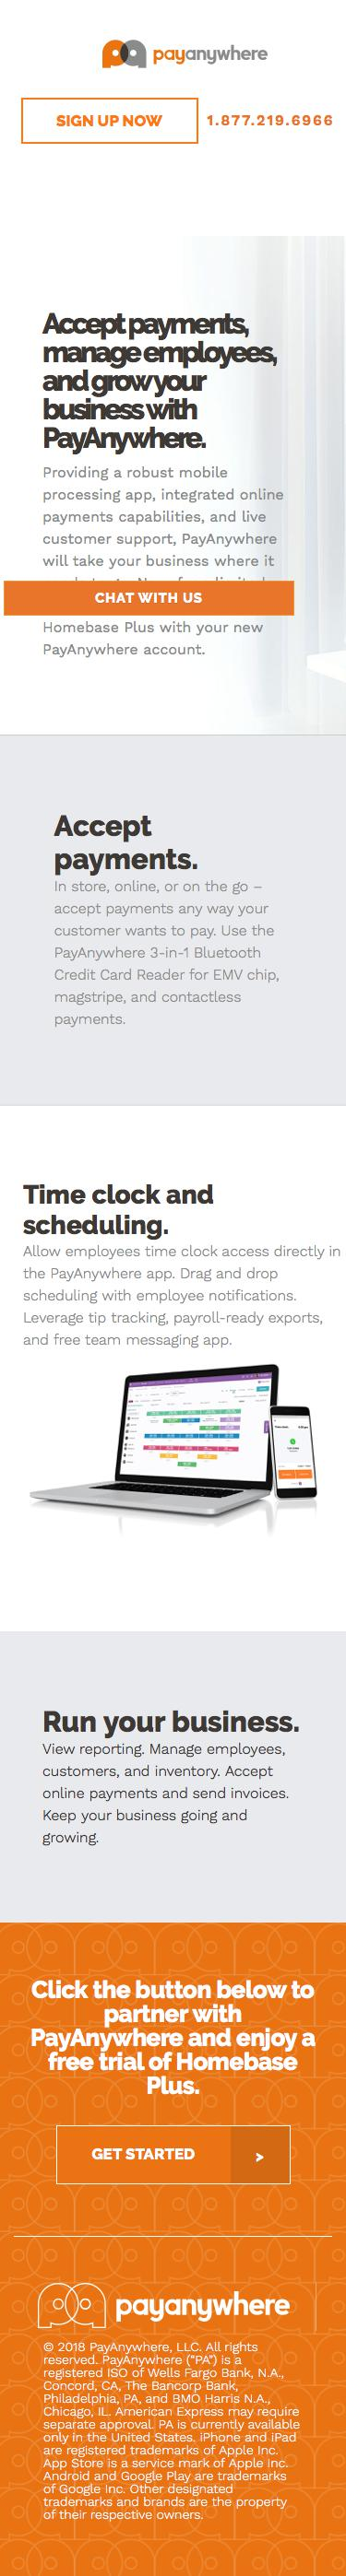 PayAnywhere | Competitive Intelligence and Insights | Crayon